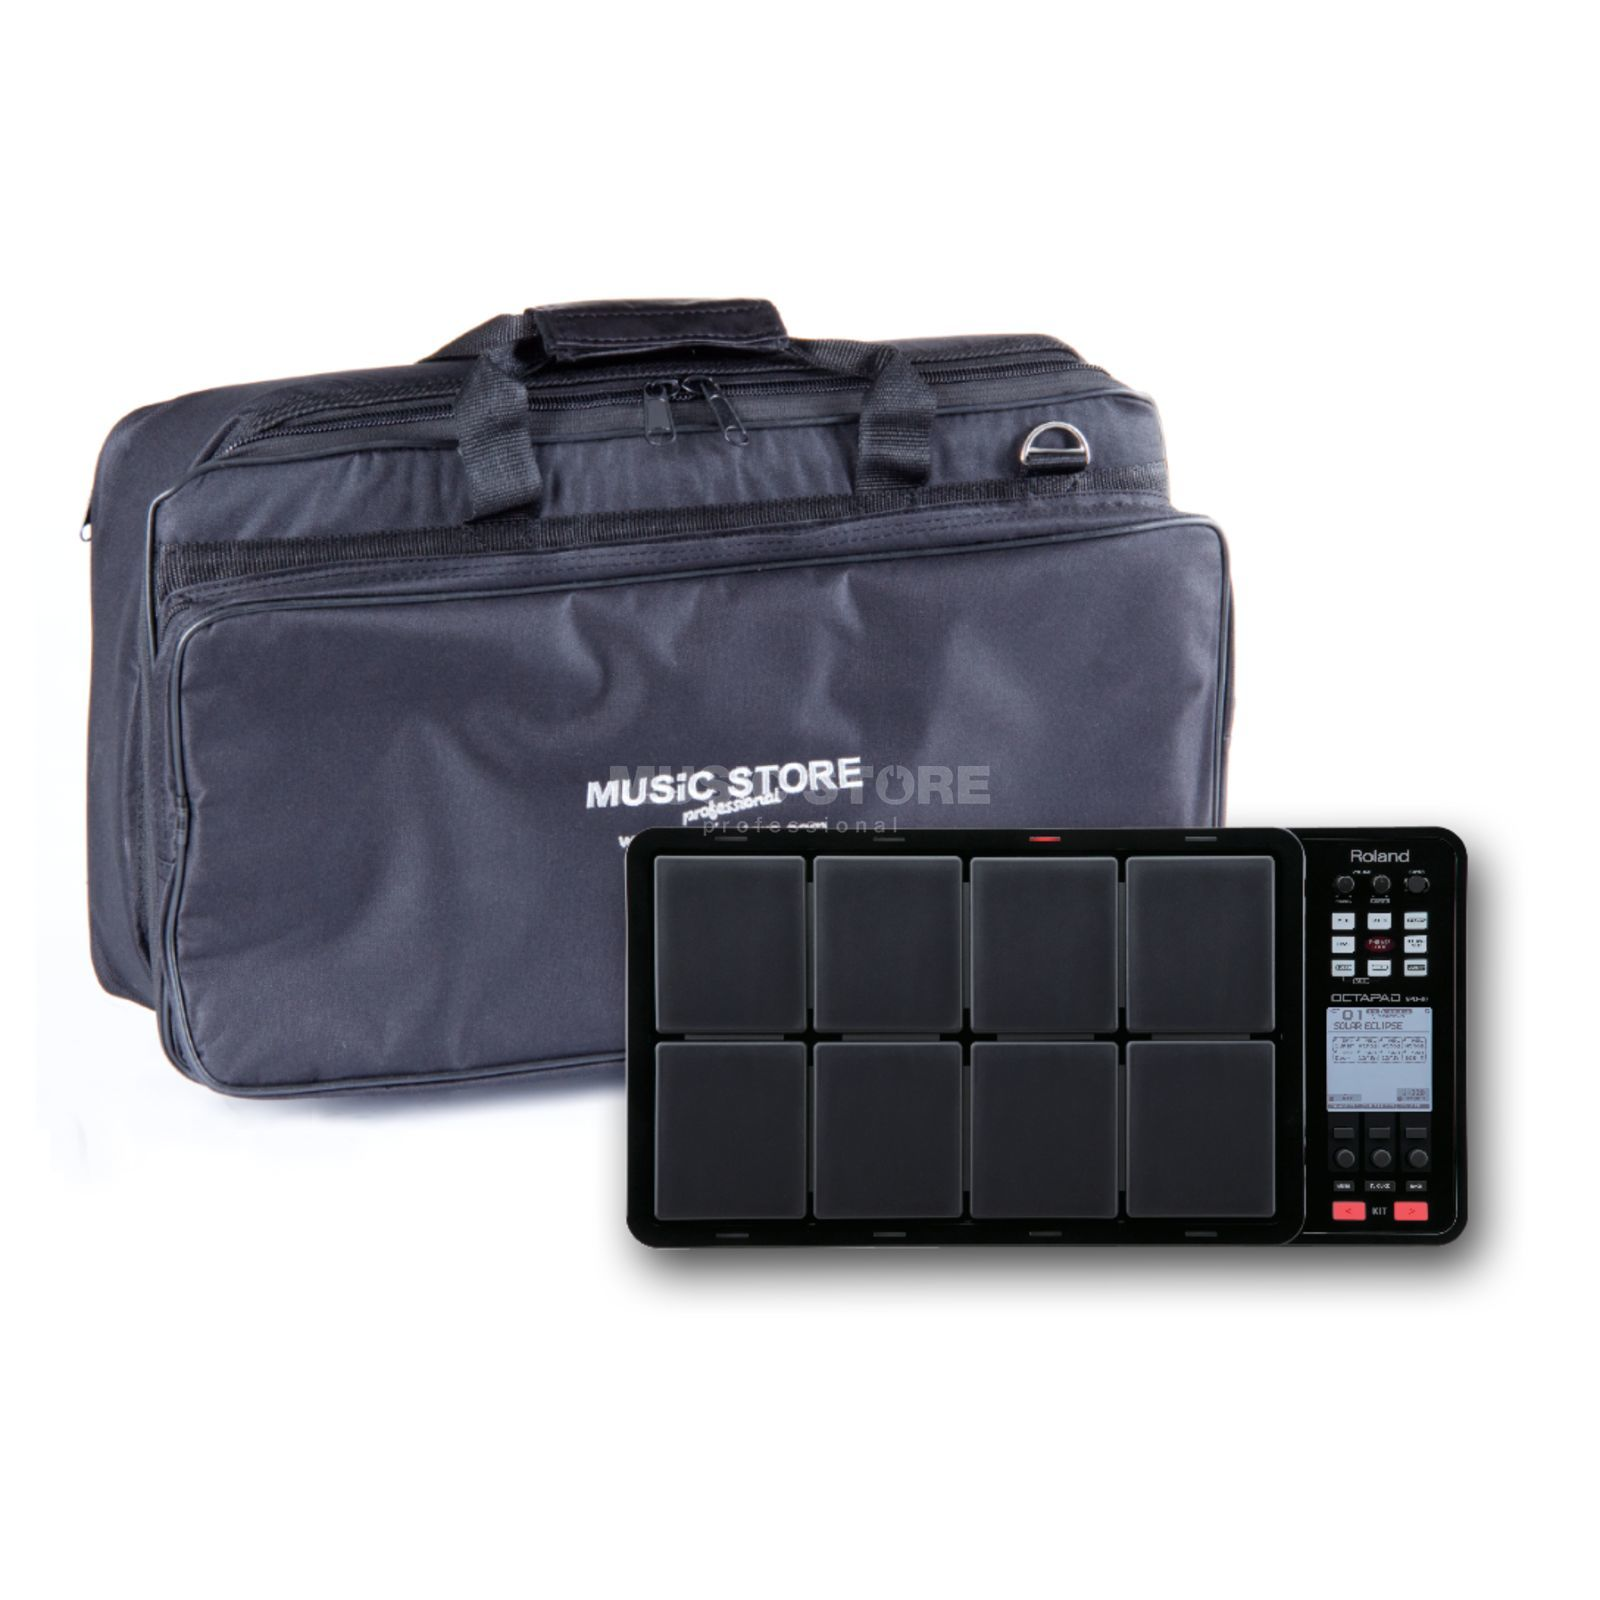 SPD-30BK + Bag - Set Produktbild